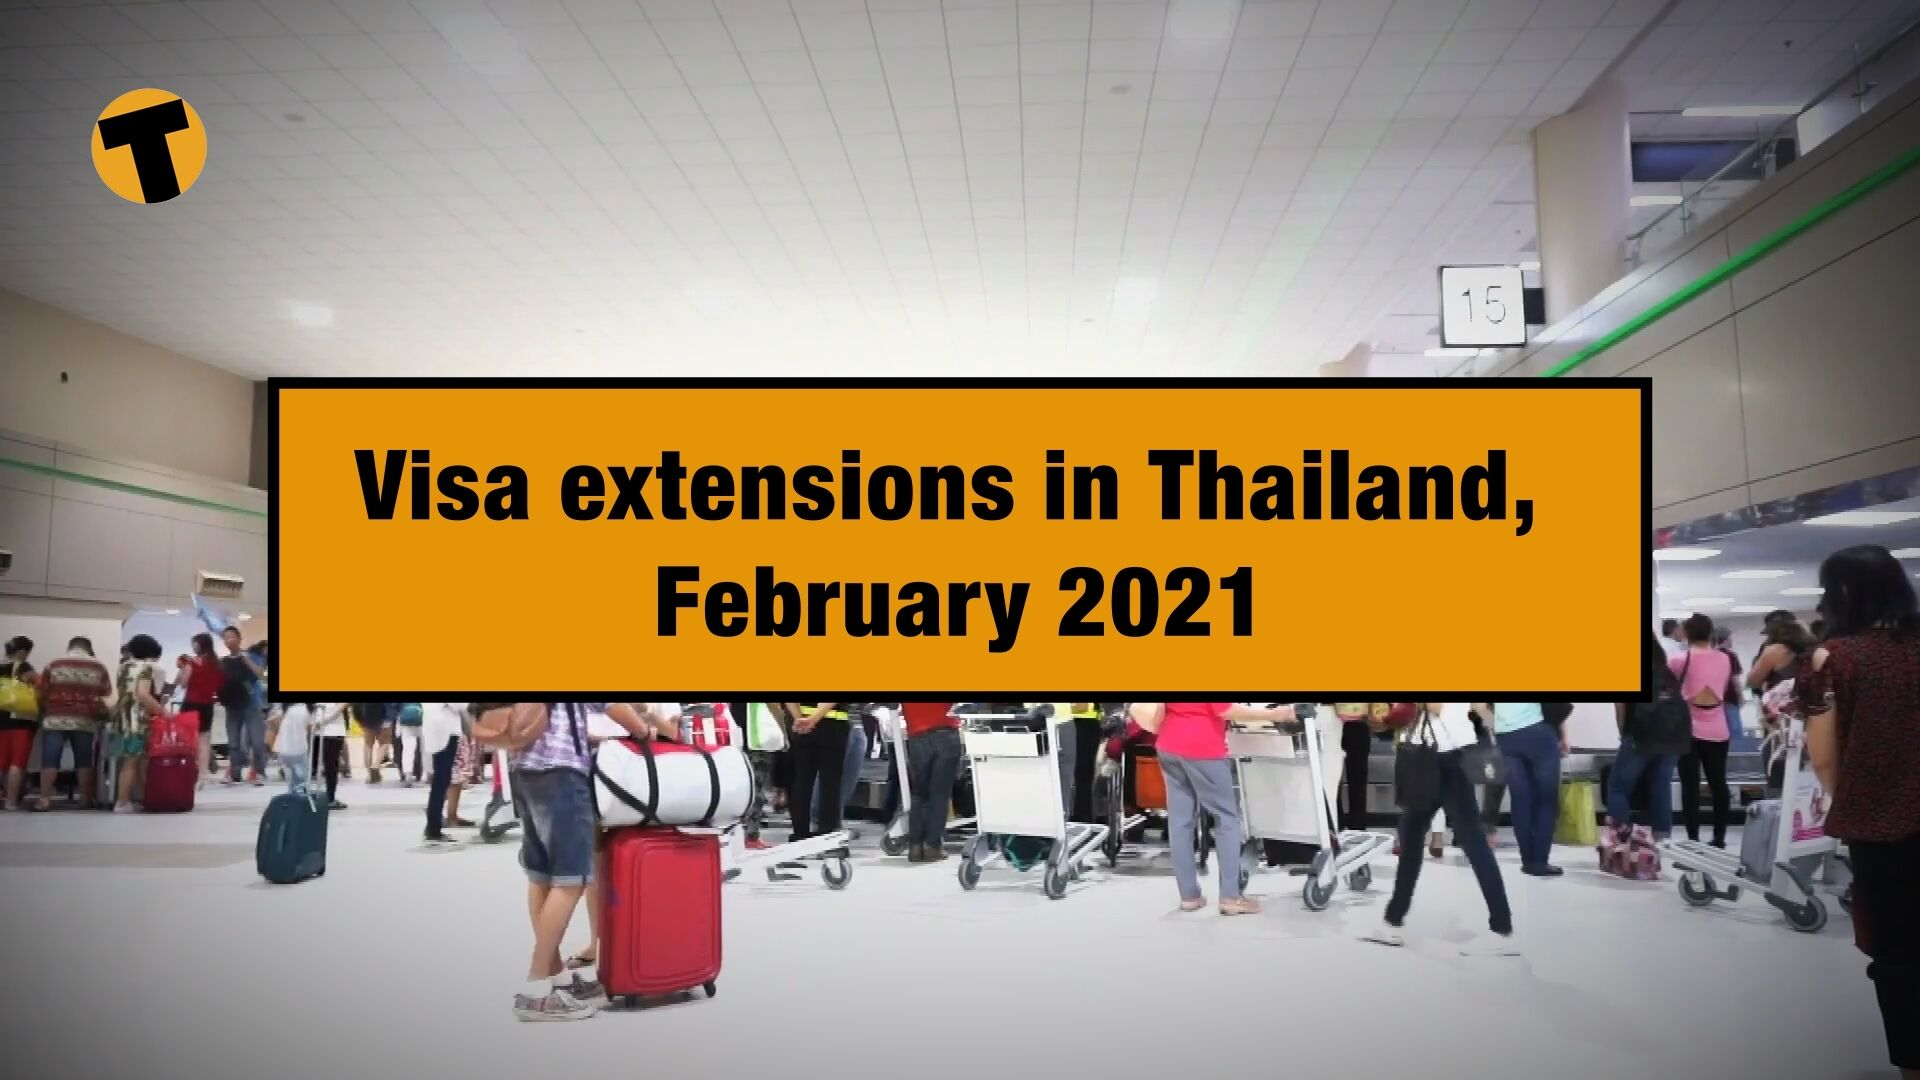 Visa extensions in Thailand for stranded tourists, February 2021 | VIDEO | The Thaiger